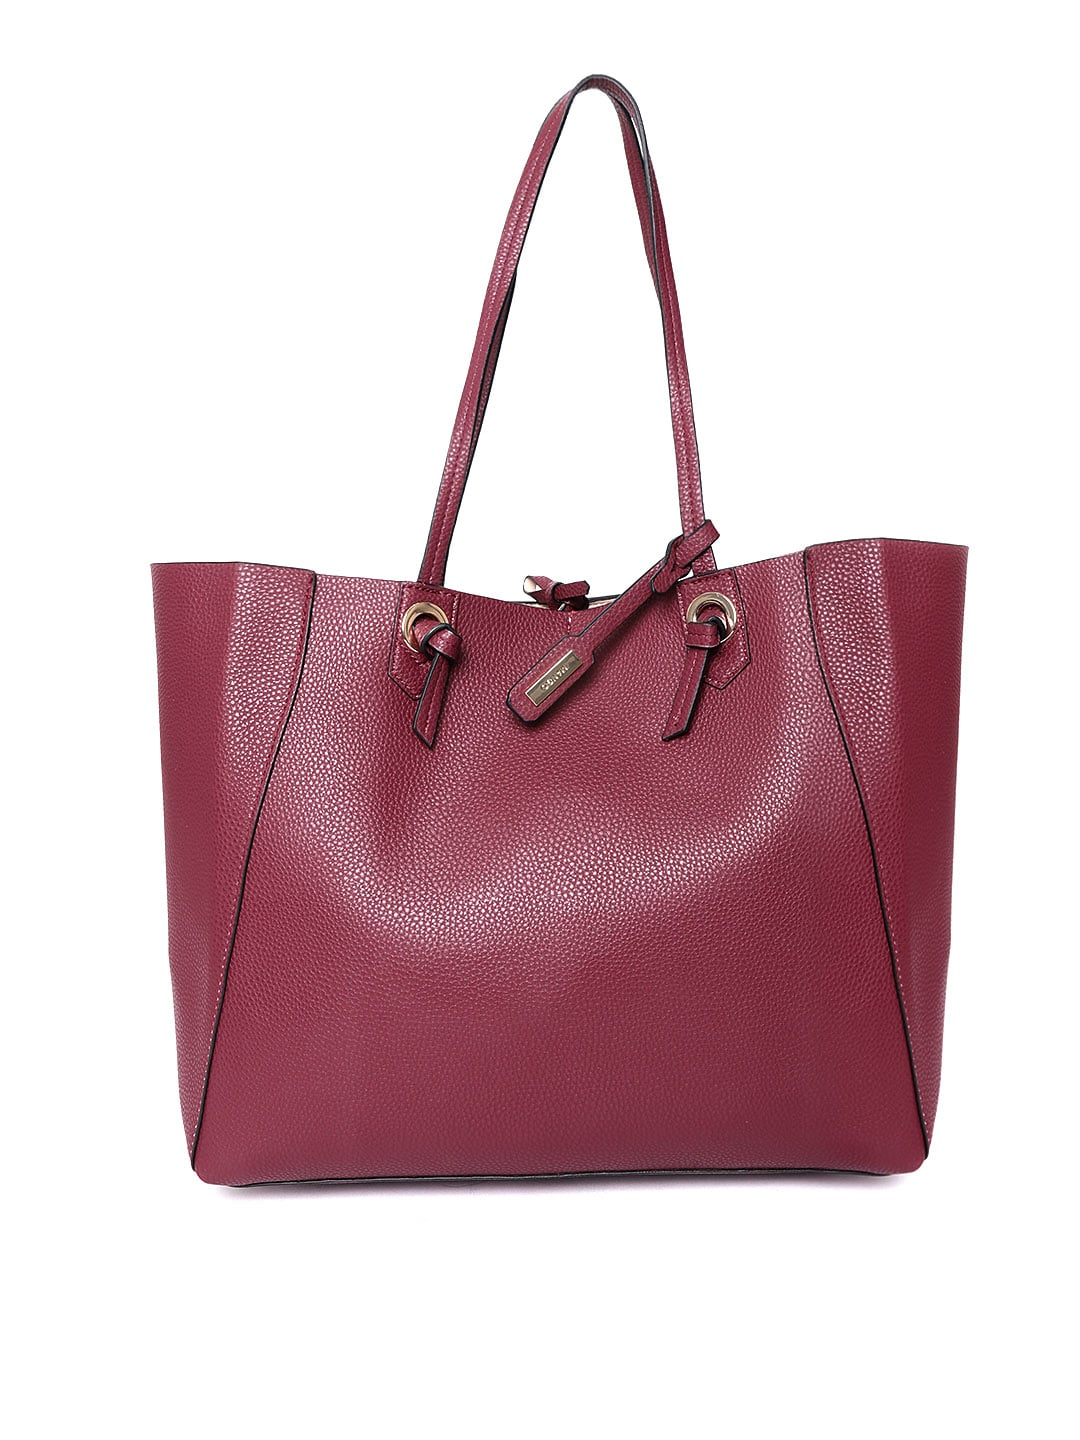 523c0c1768d5 Handbags for Women - Buy Leather Handbags